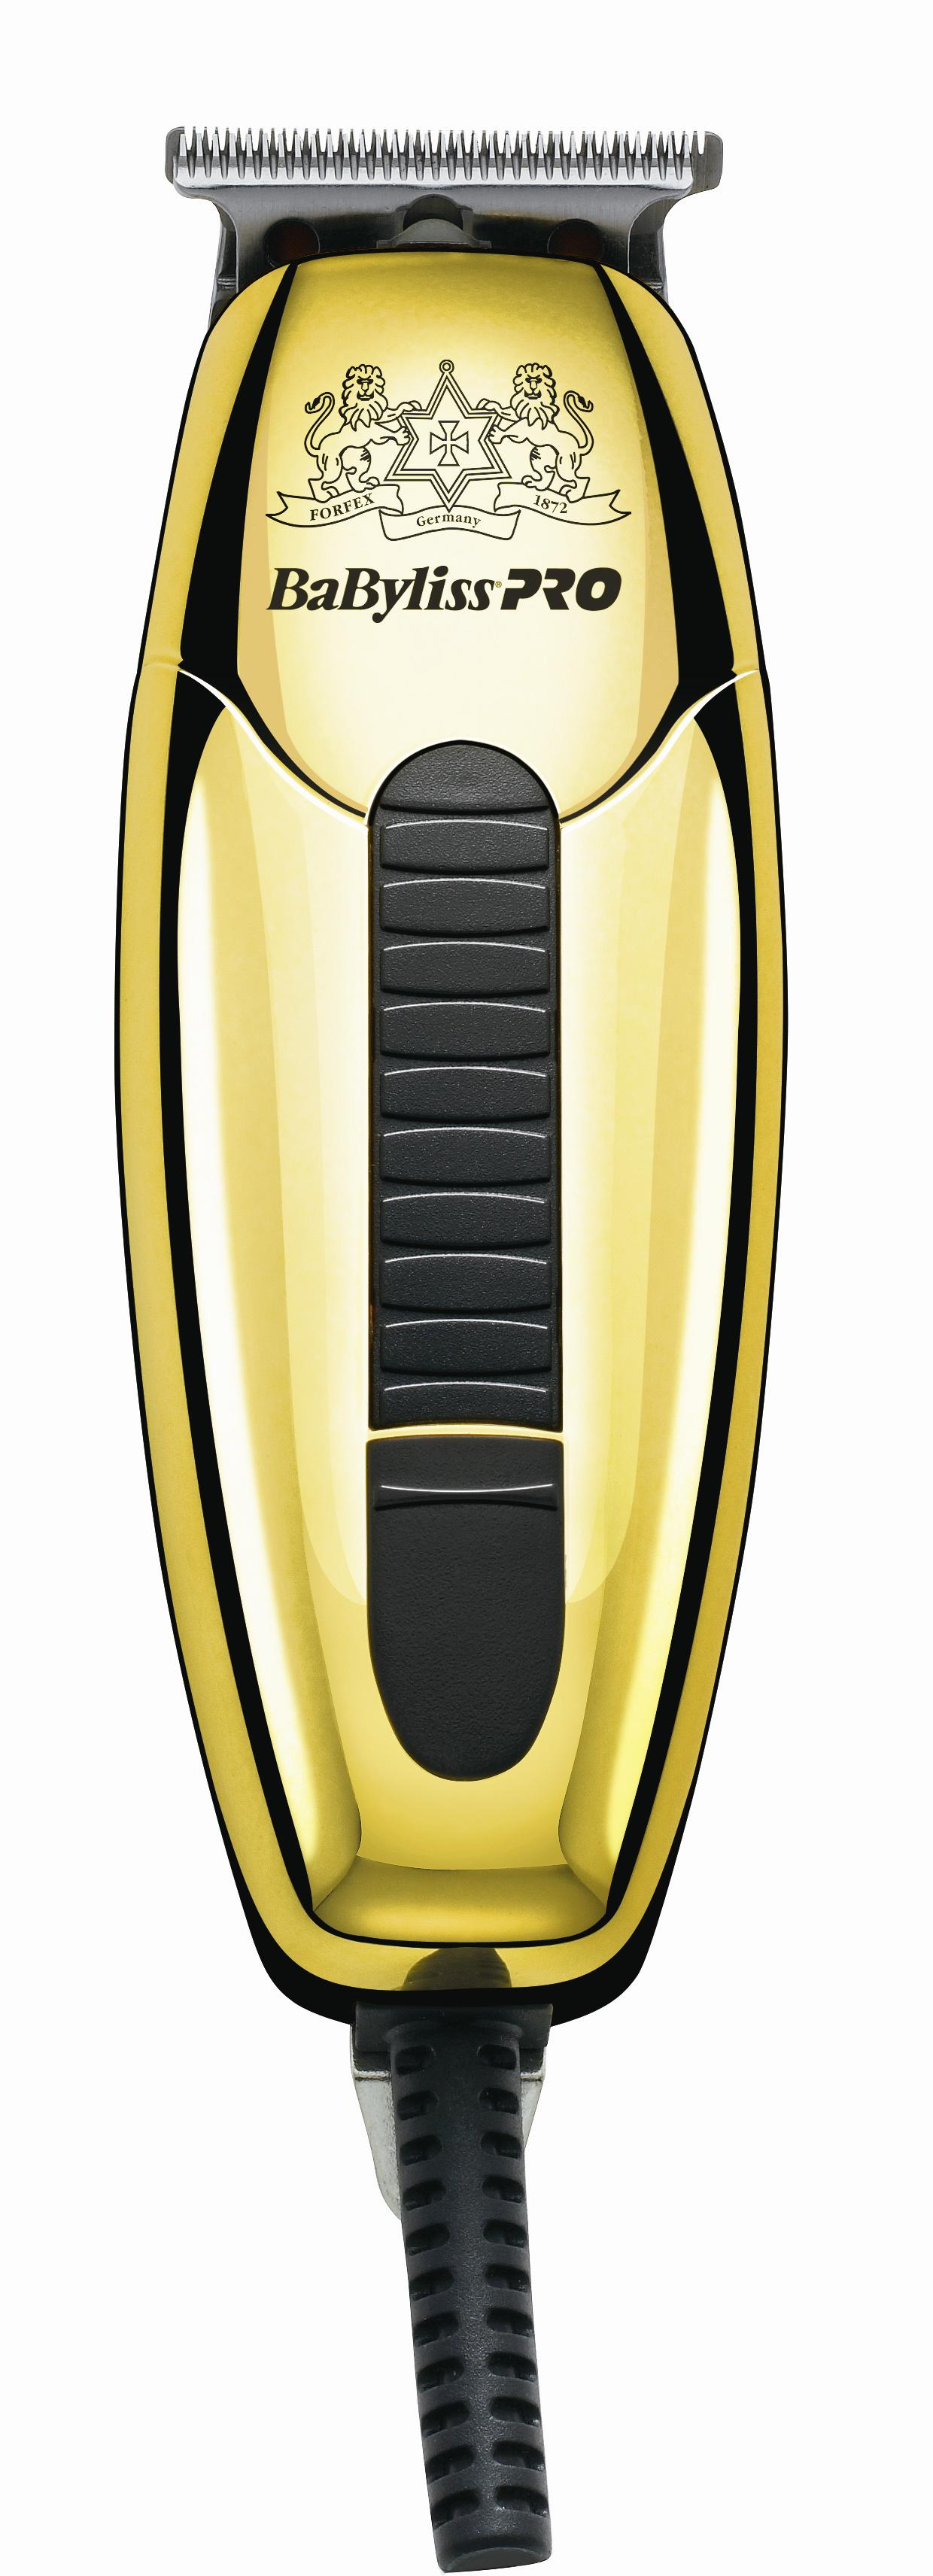 Conair bg59 gold outlining trimmer ergonomic lite weight